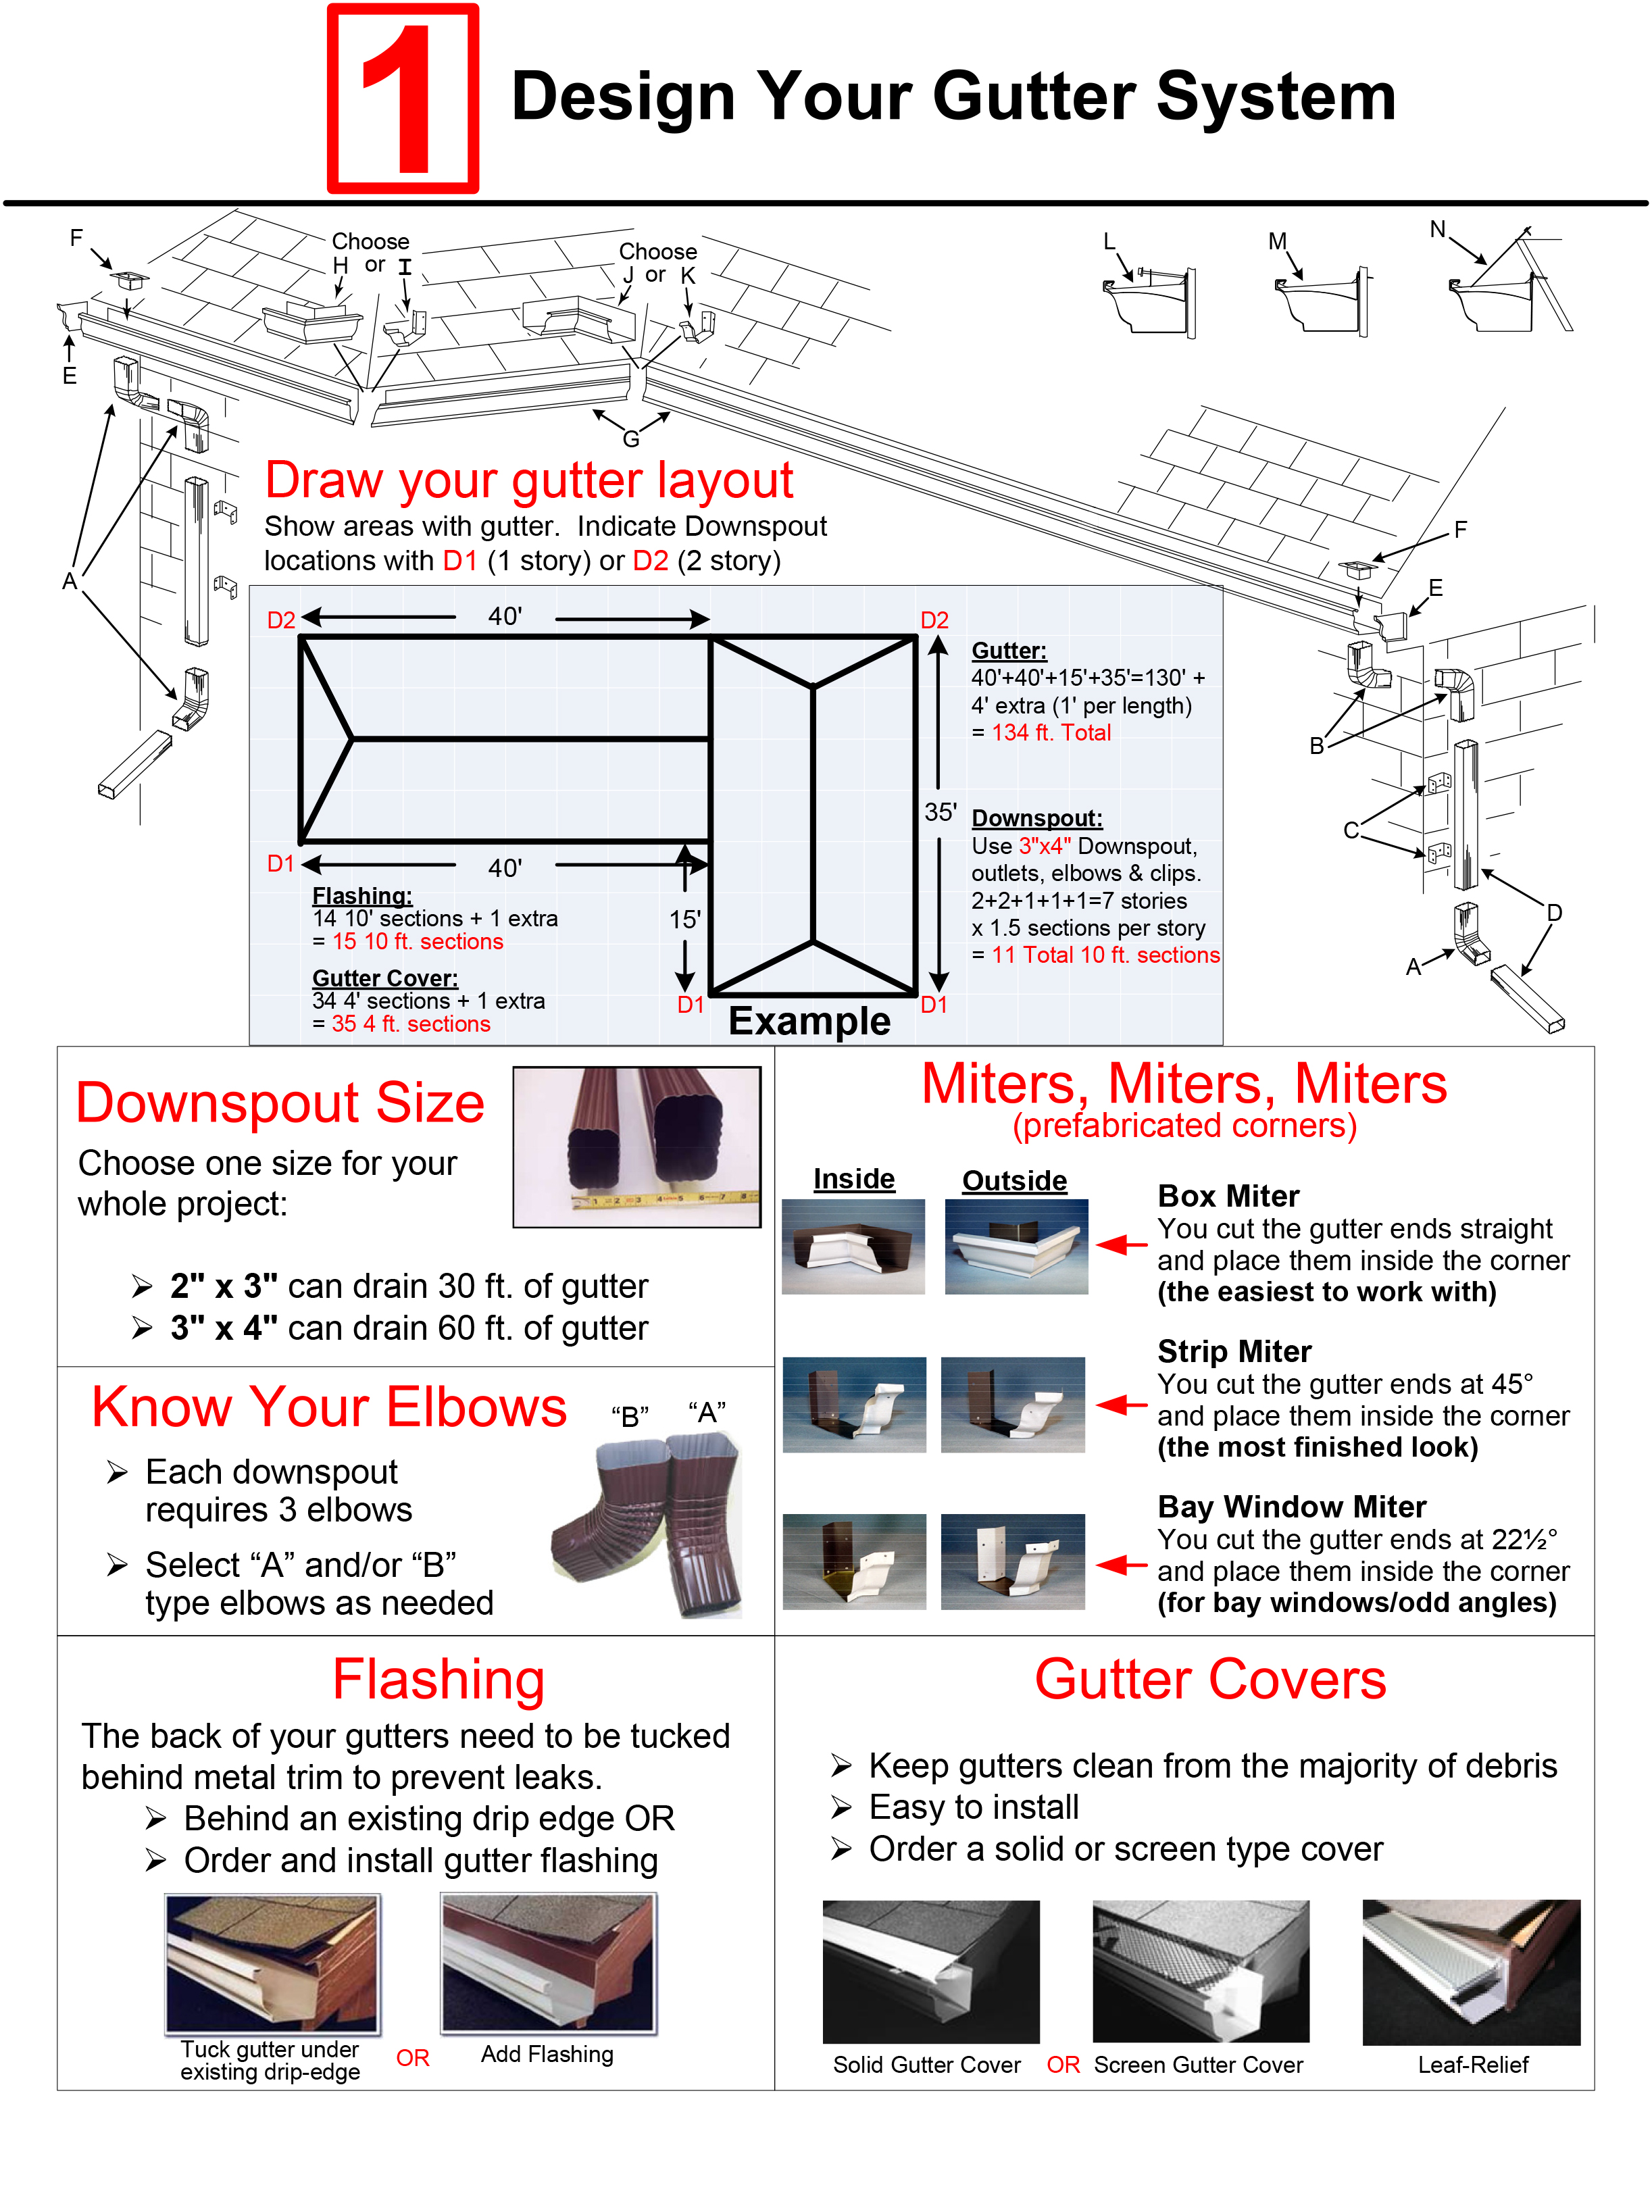 How to install a downspout in a gutter - View Diagram